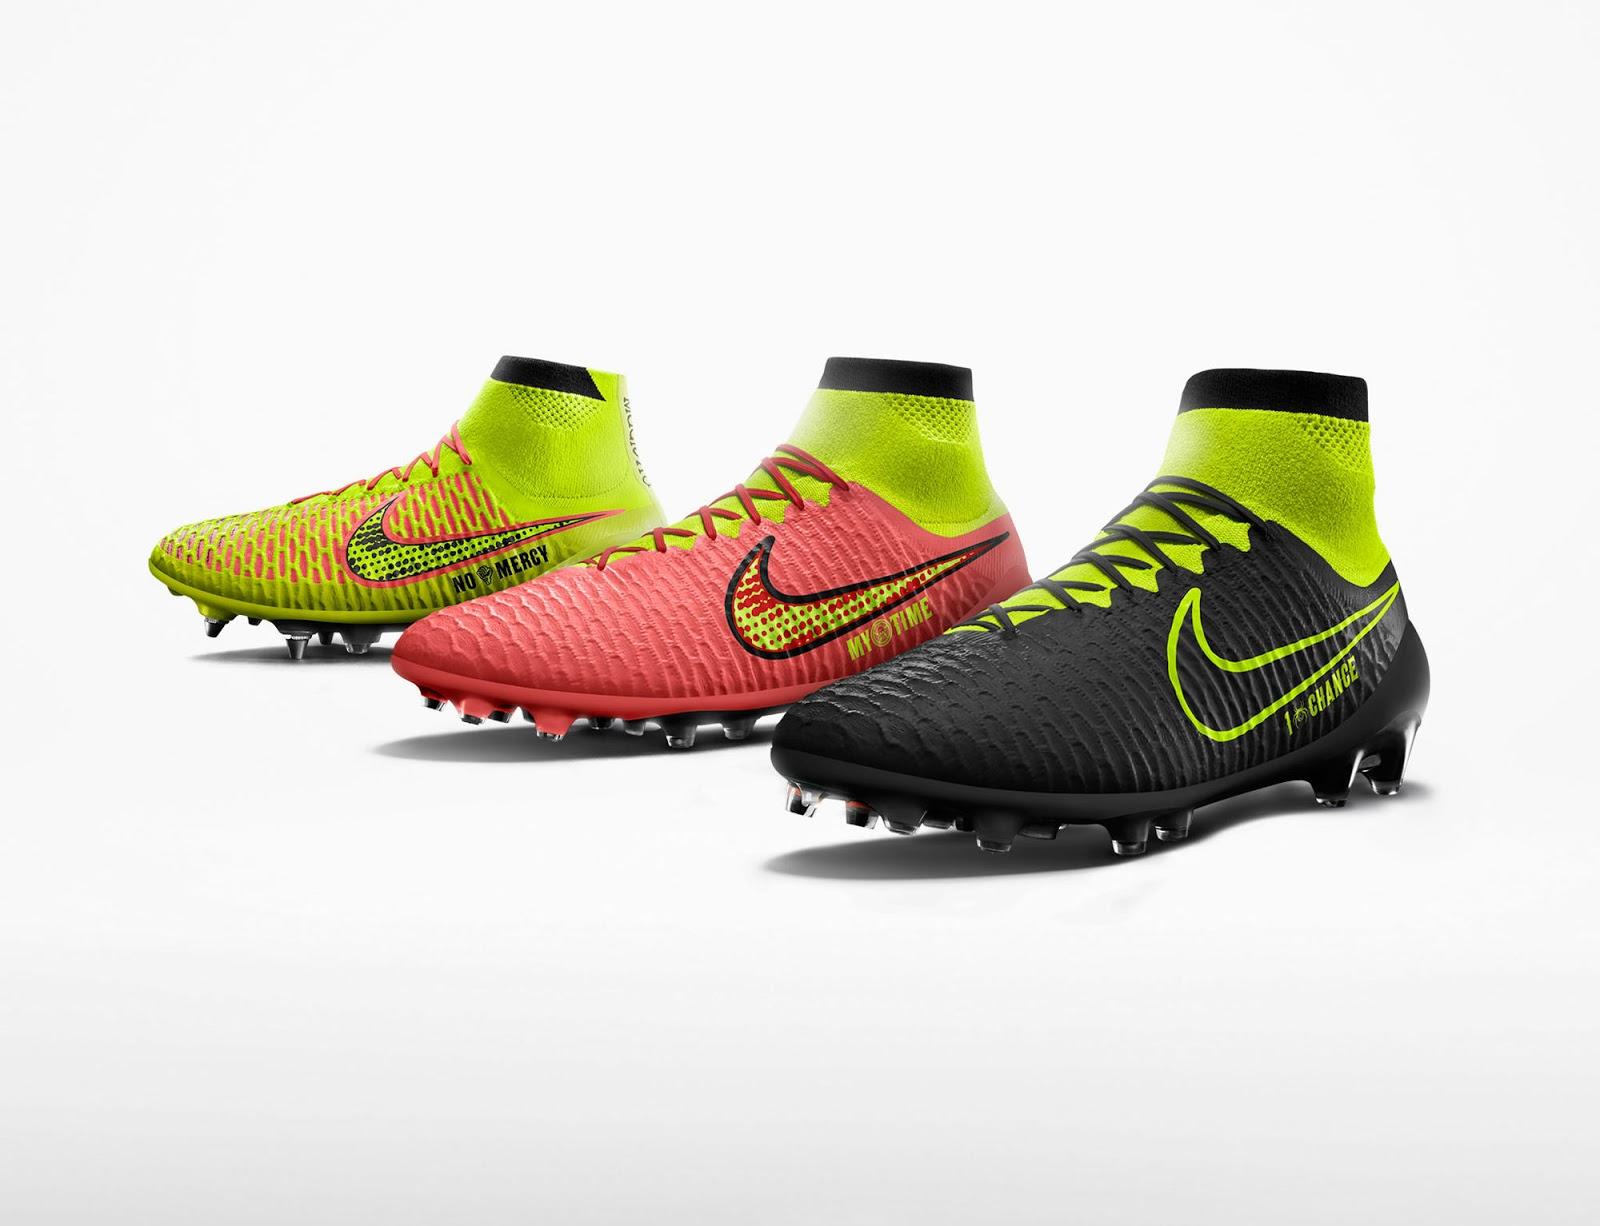 As seen on the pictures, Nike offers at least five different Nike Magista  Boot ...